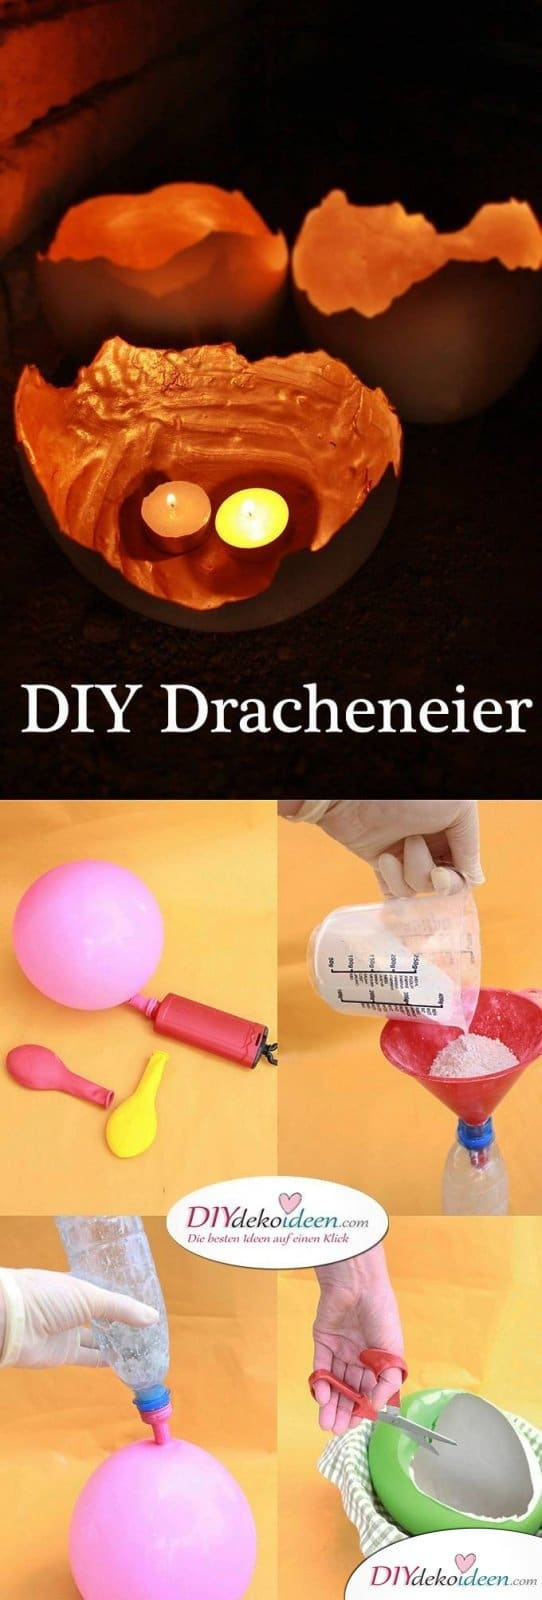 DIY Games of Thrones Drachen Eier aus Gips